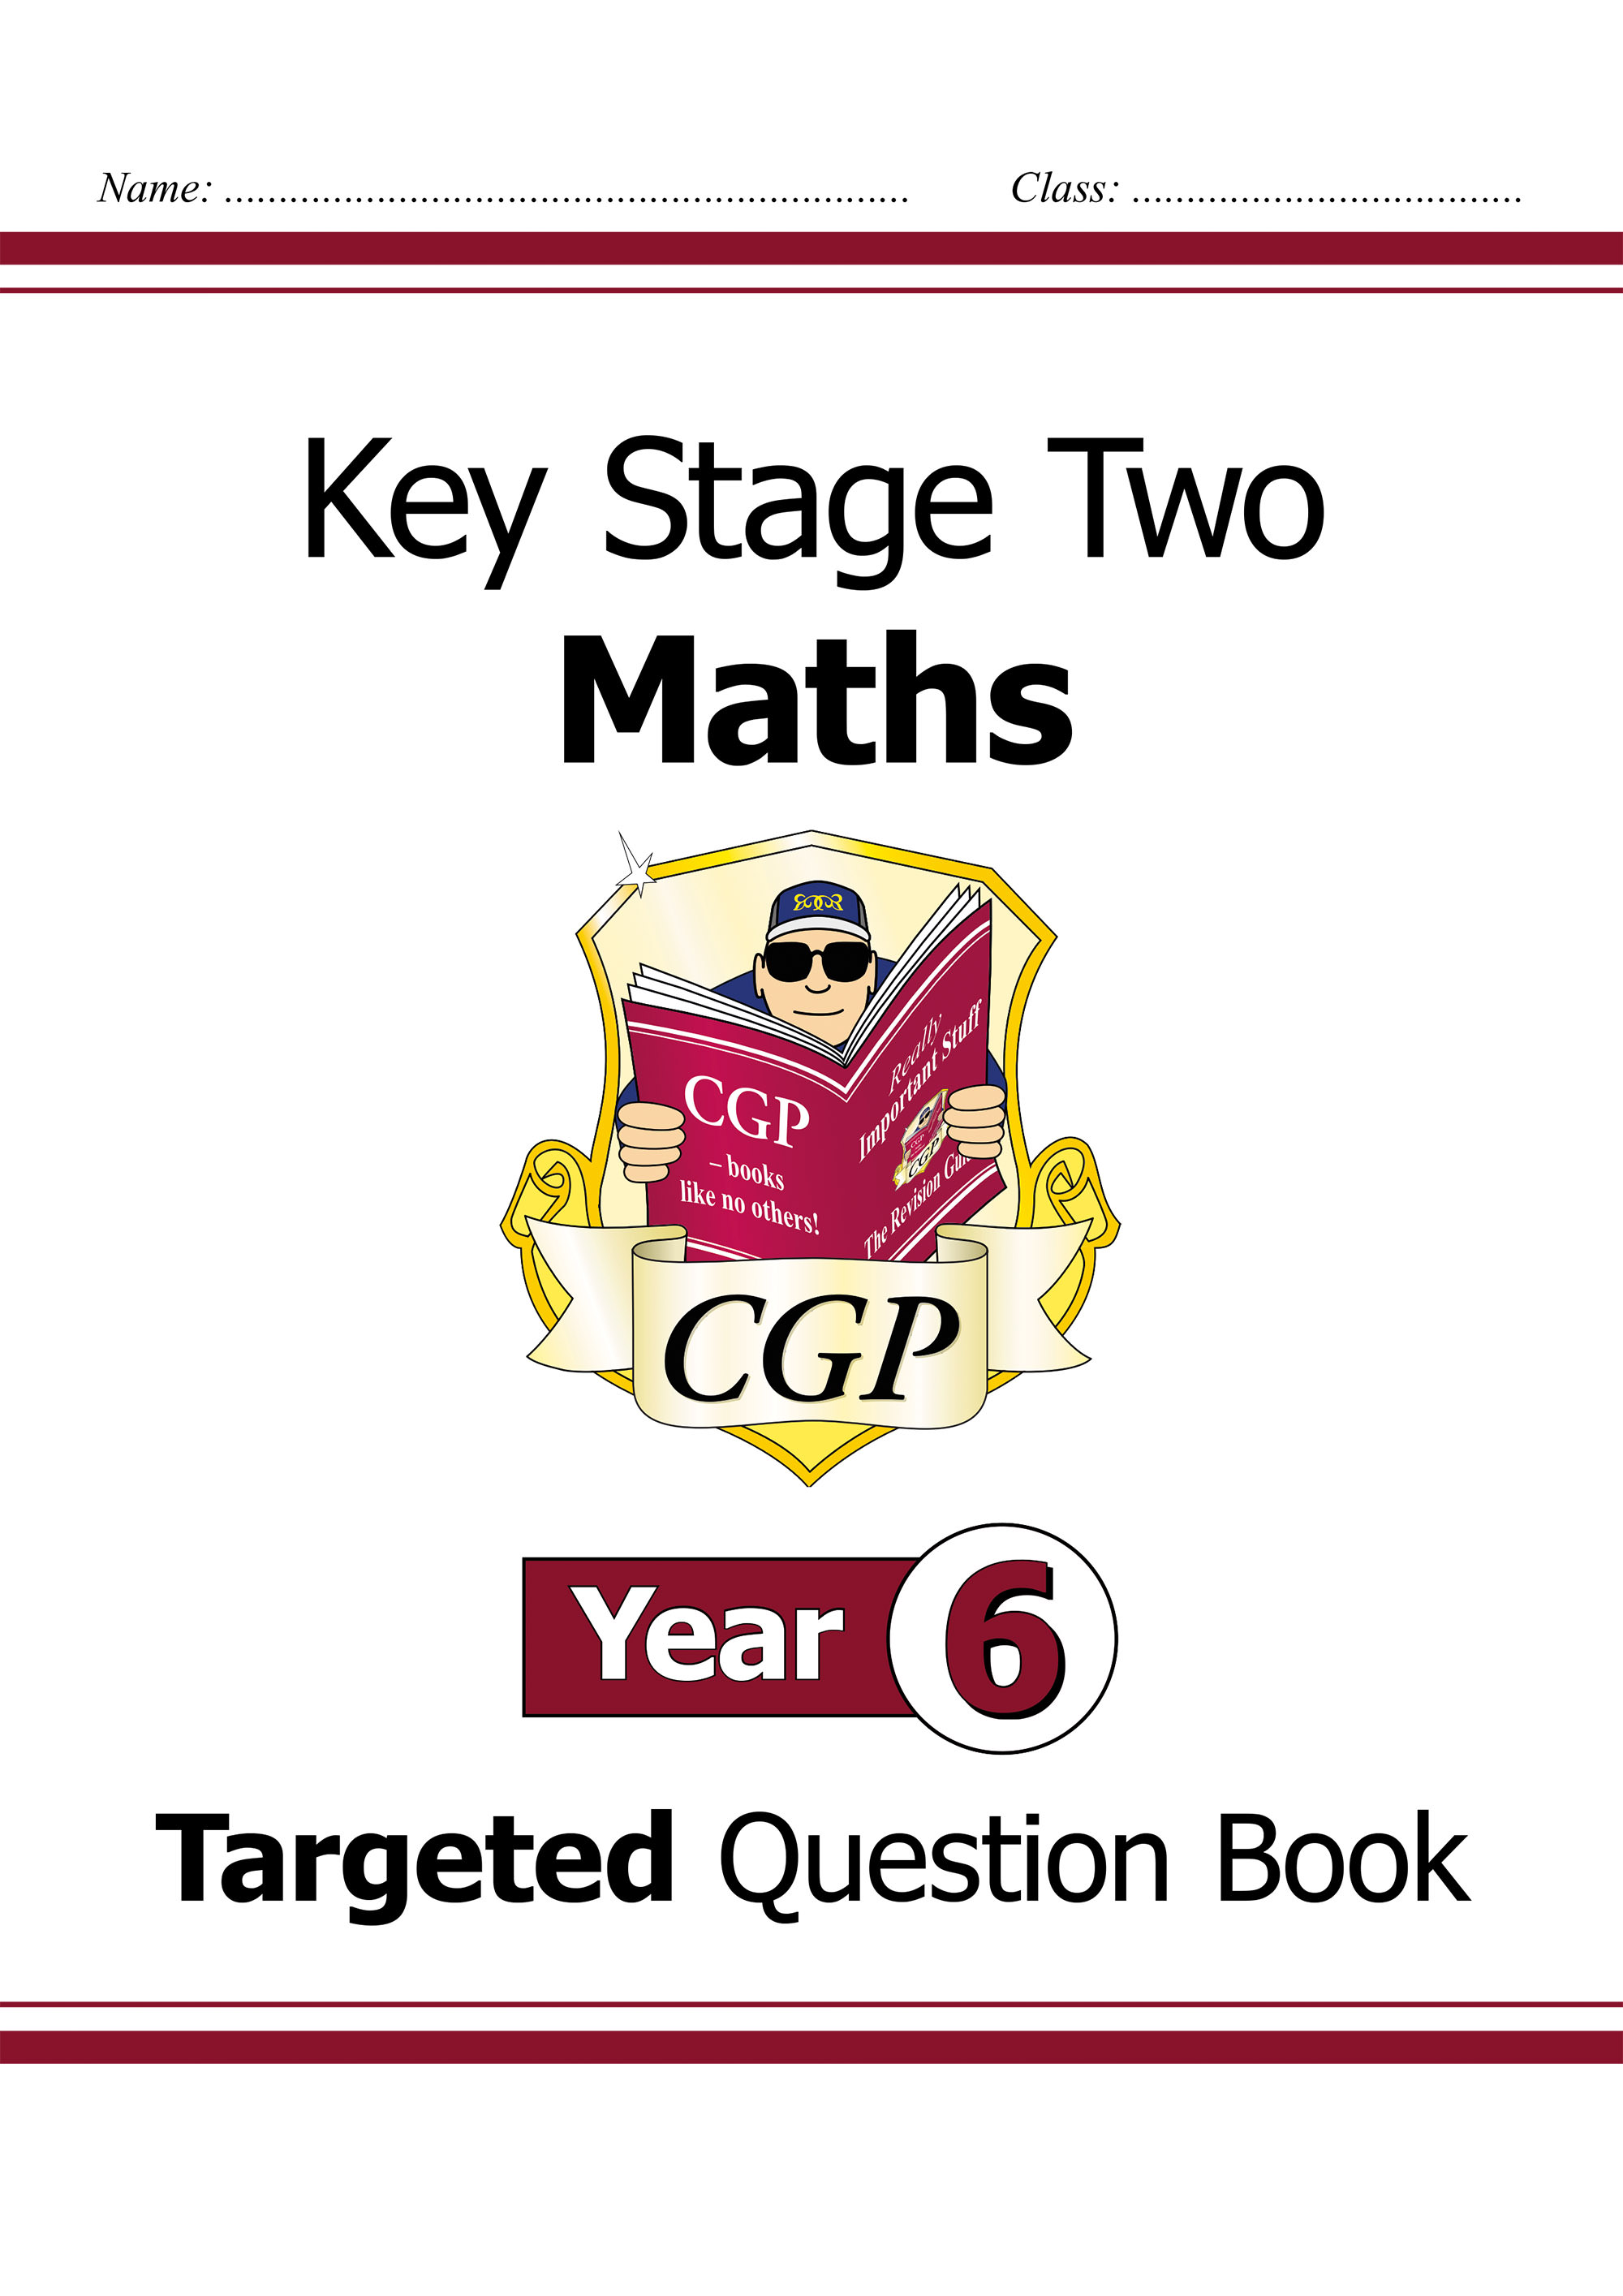 M6Q24DK - KS2 Maths Targeted Question Book - Year 6